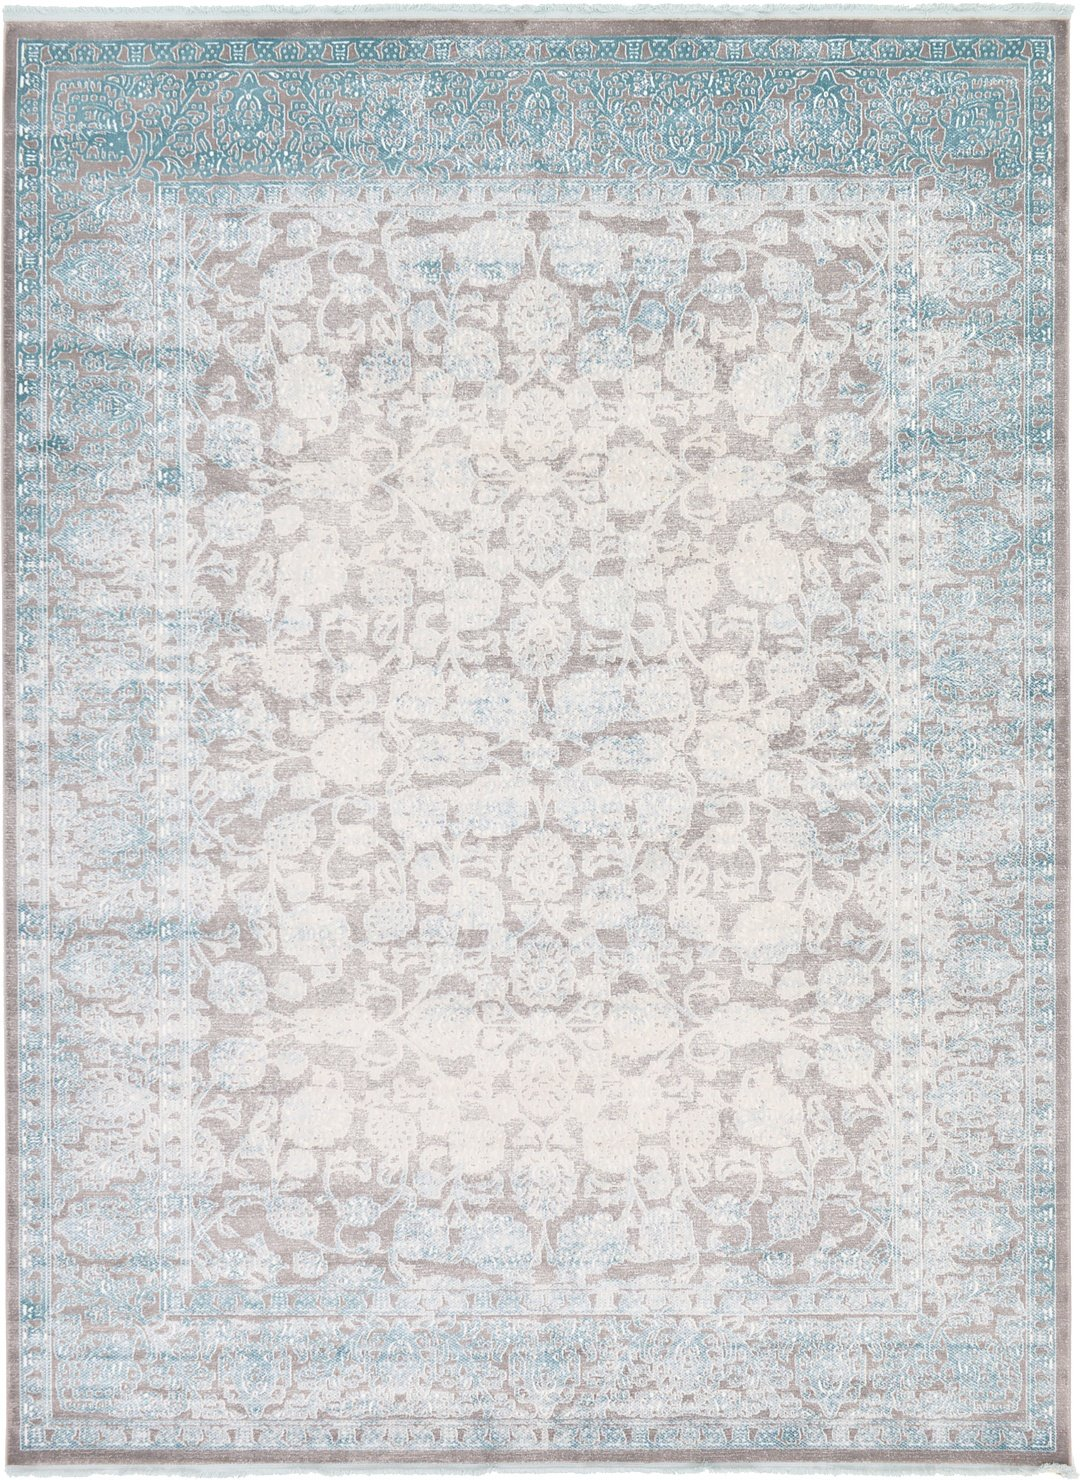 Vintage Castle Collection Rugs Light Gray 9' x 12' FT Area Rug - Modern & Traditional Design - Home Décor